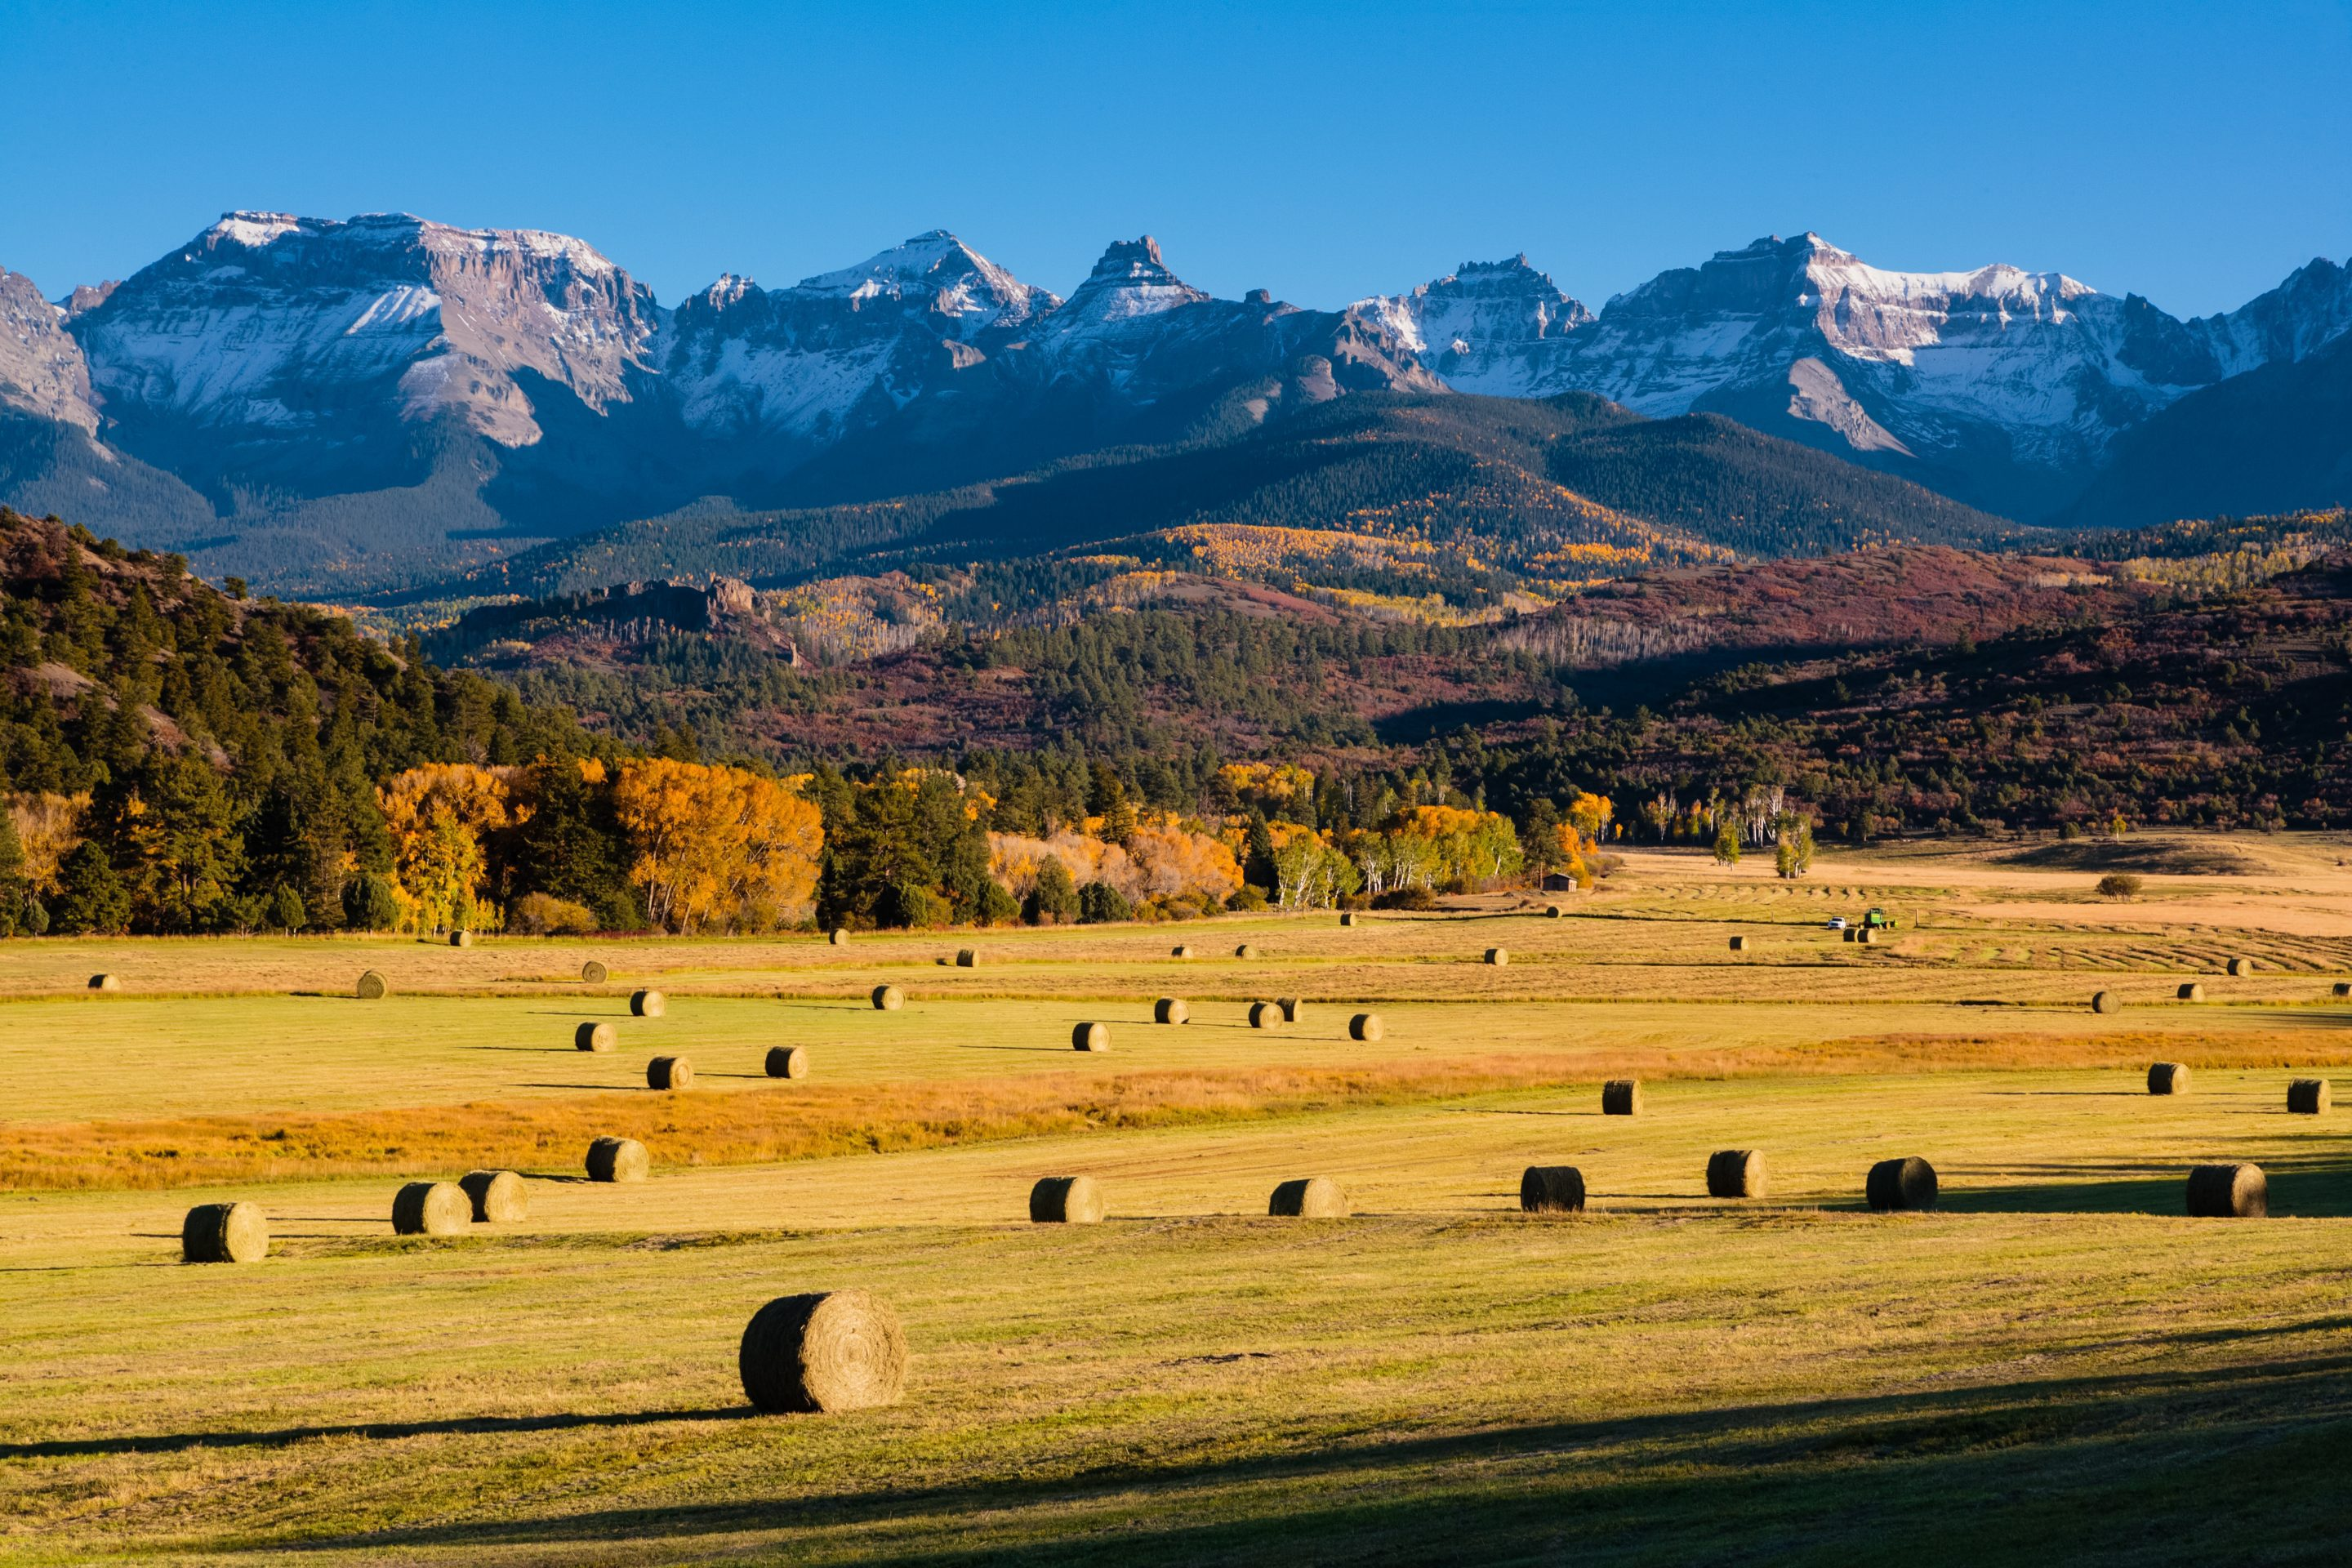 A field with hay bales at the foot of a forest and mountain.